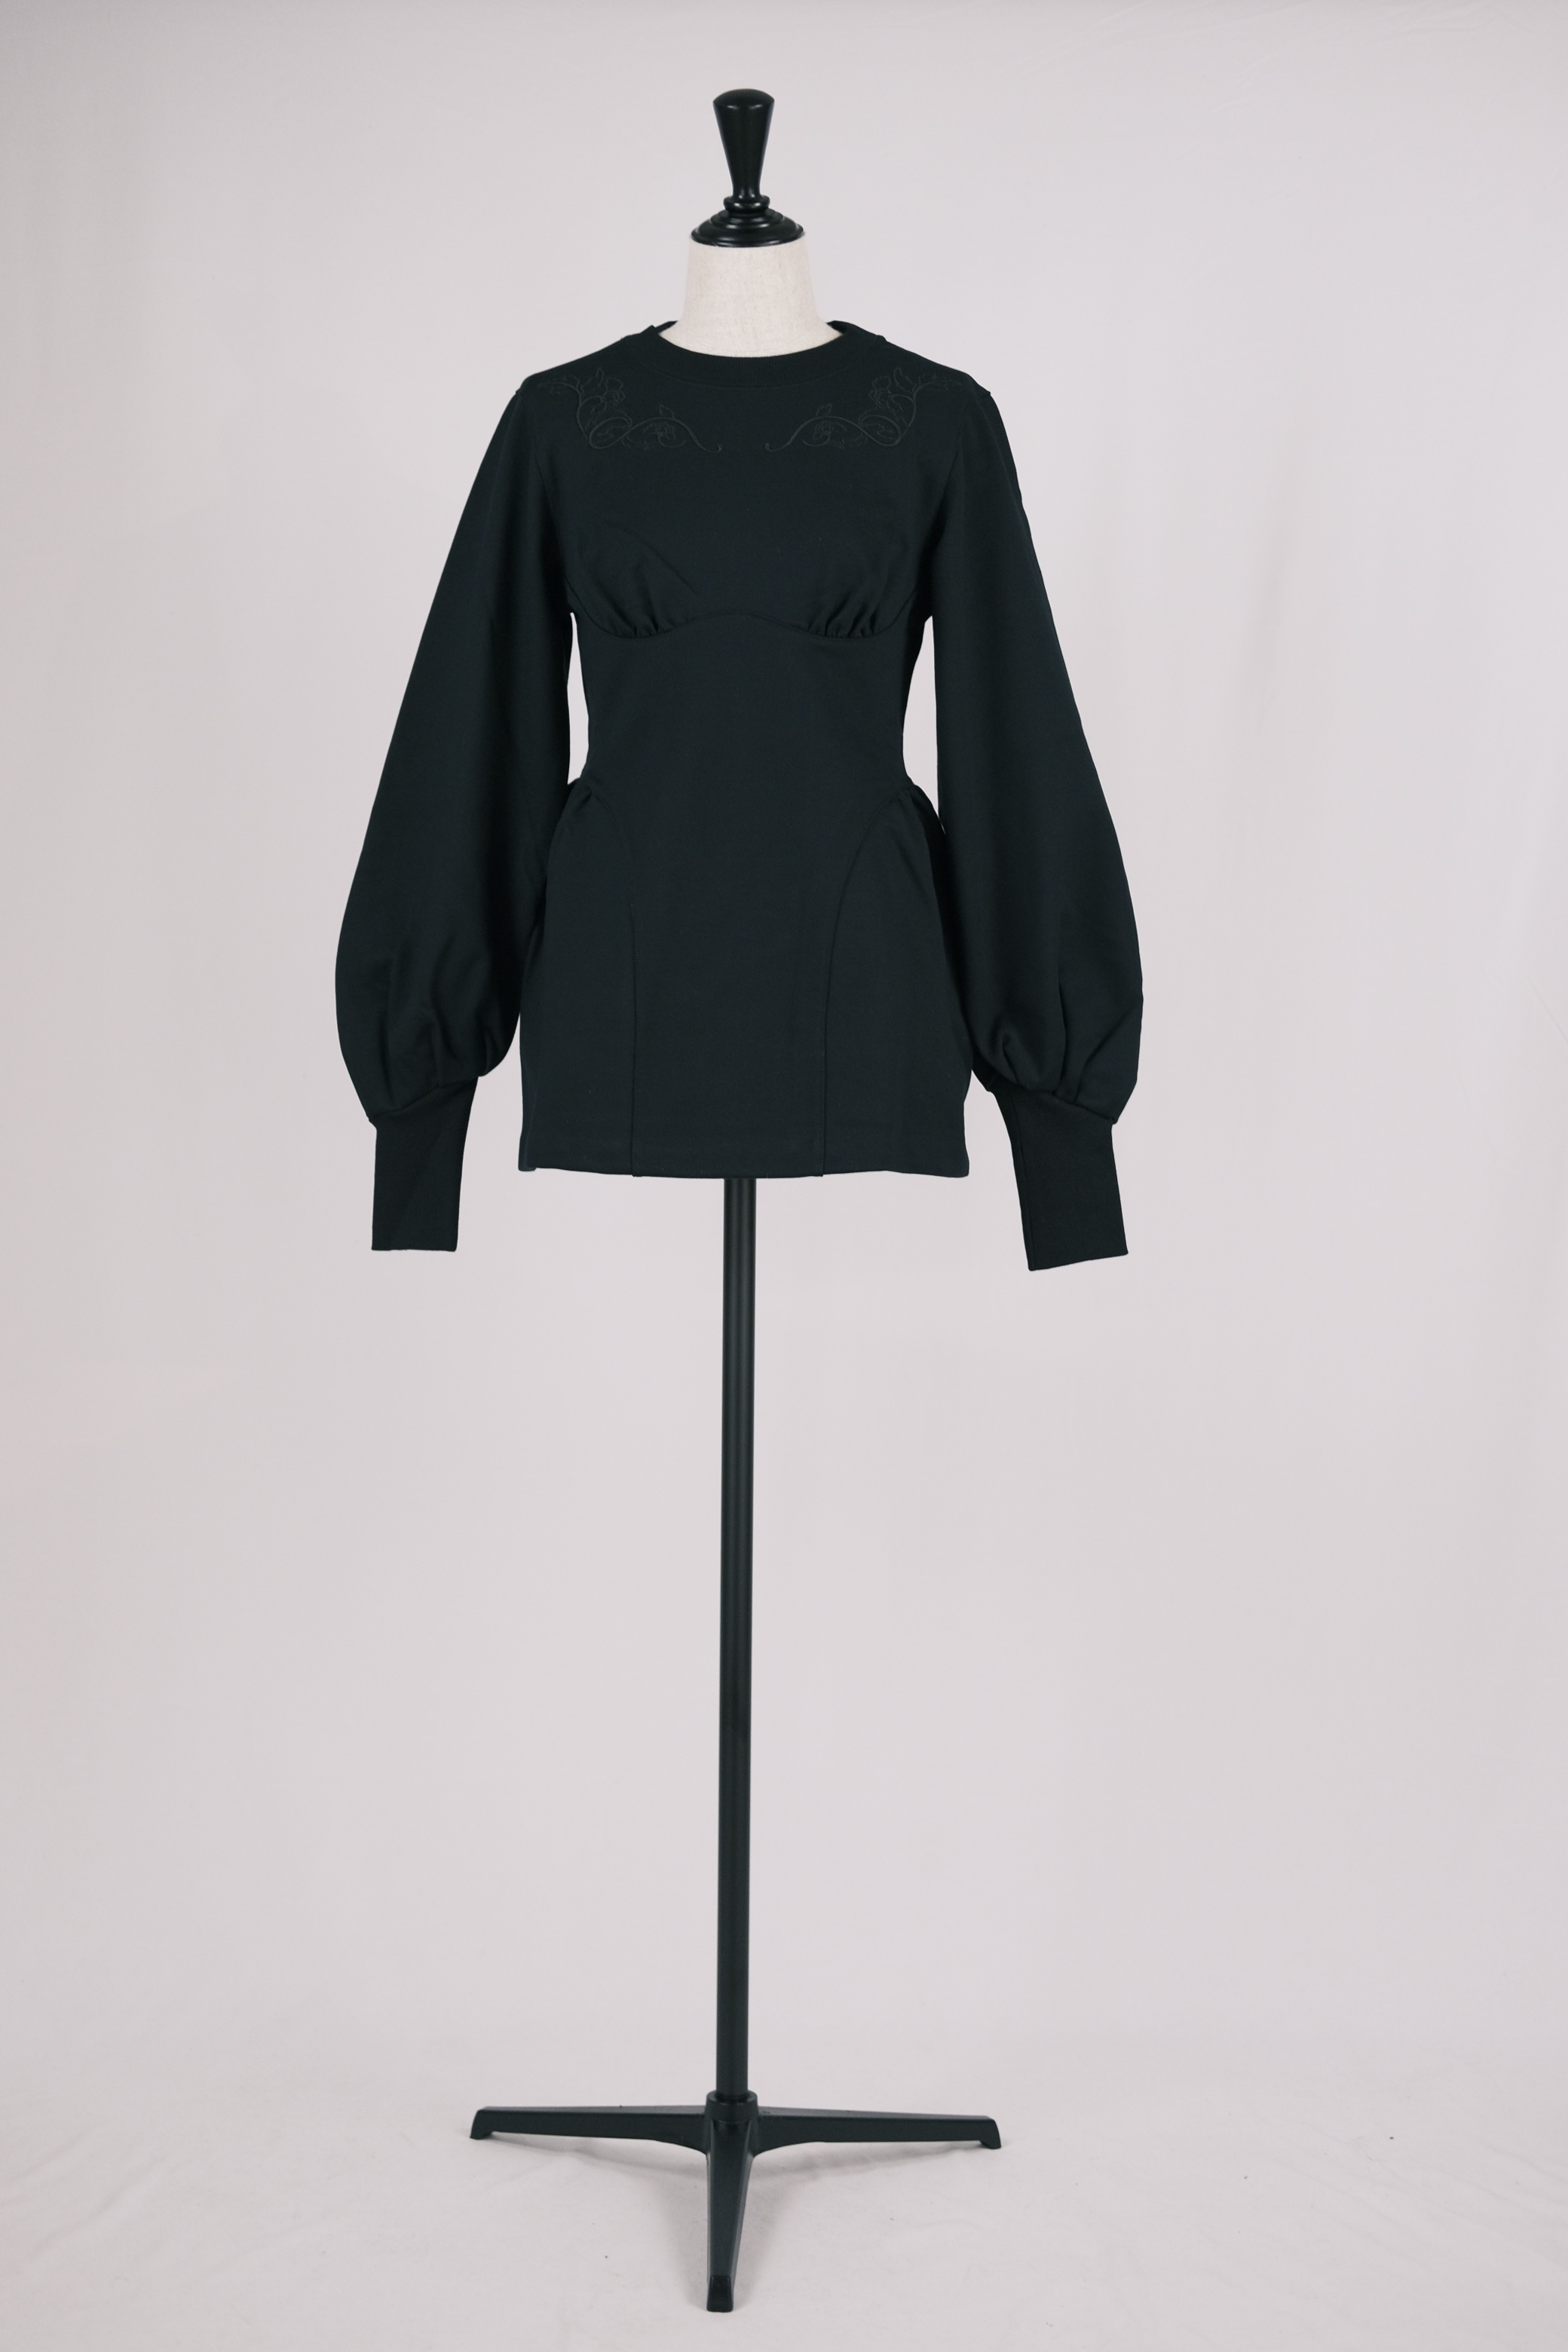 【FETICO】floral embroidered sweat shirt - black